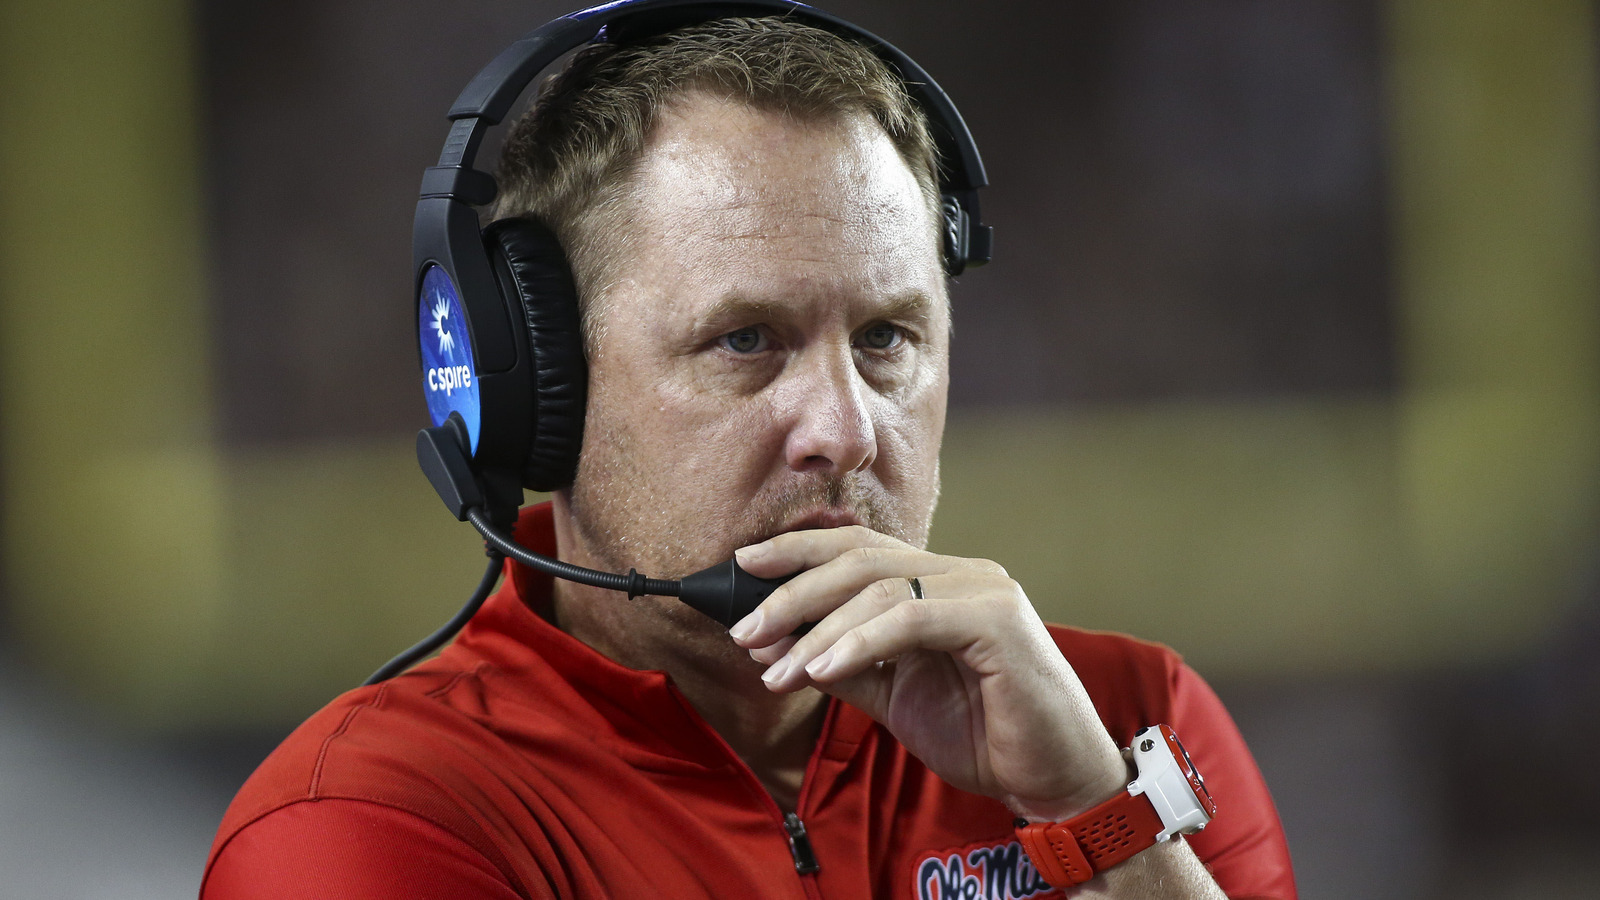 Phone records: Over 200 calls between Hugh Freeze, Ole Miss disassociated booster